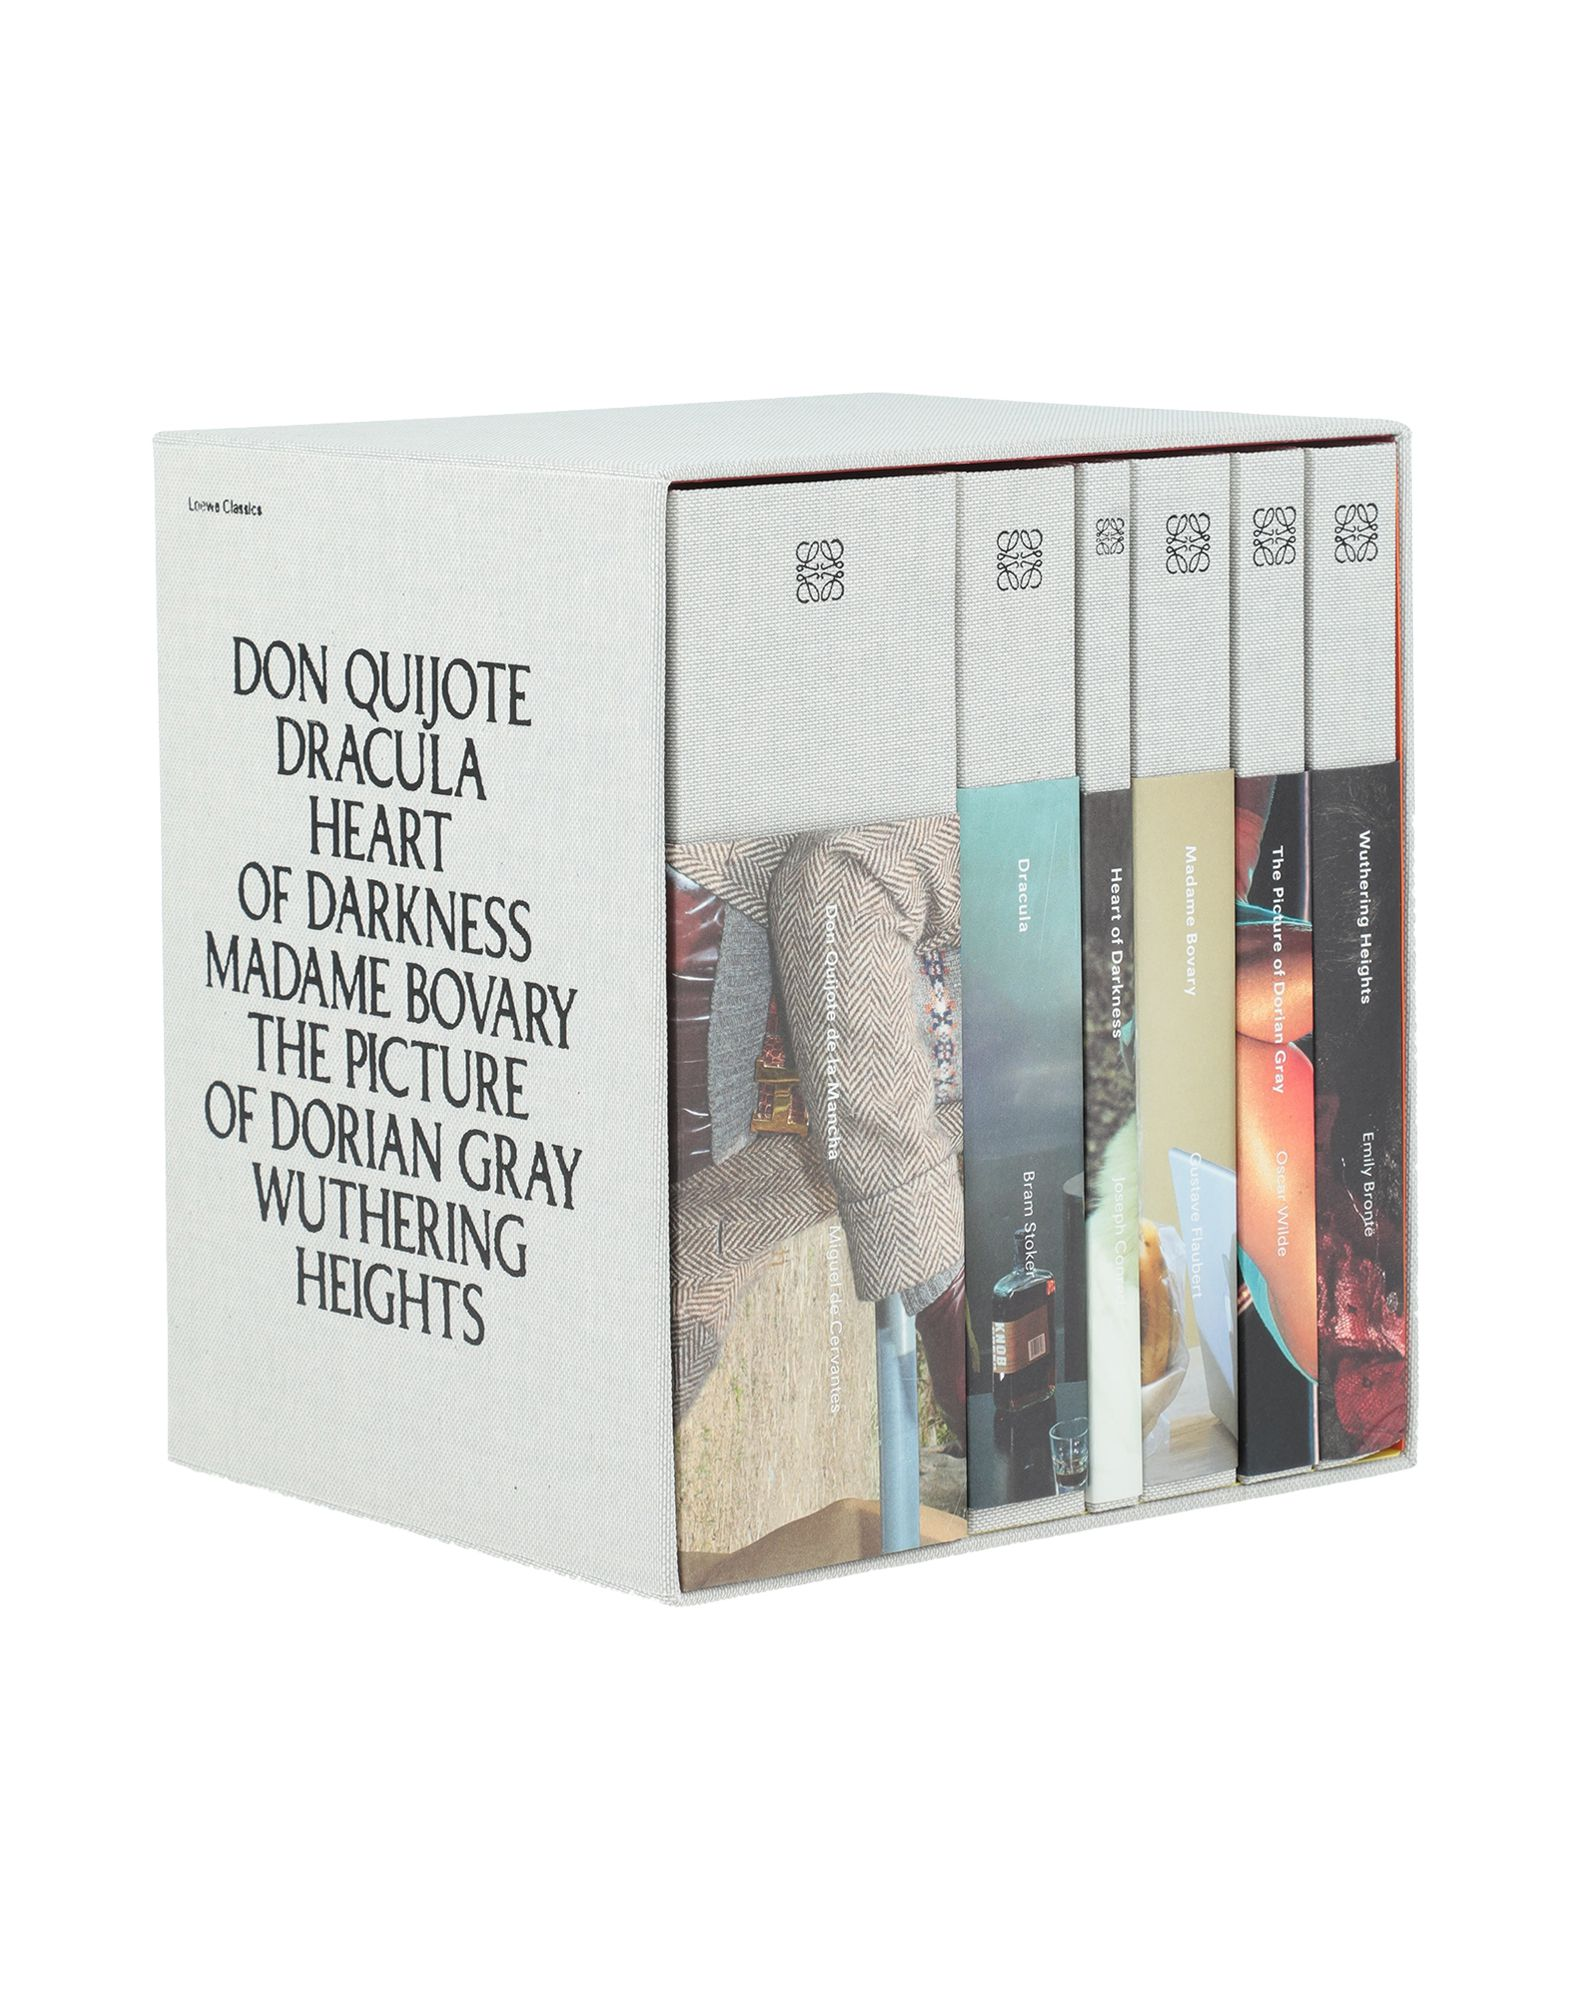 LOEWE LIFESTYLE. hardcover, text in english, 6-piece set, limited edition. Paper